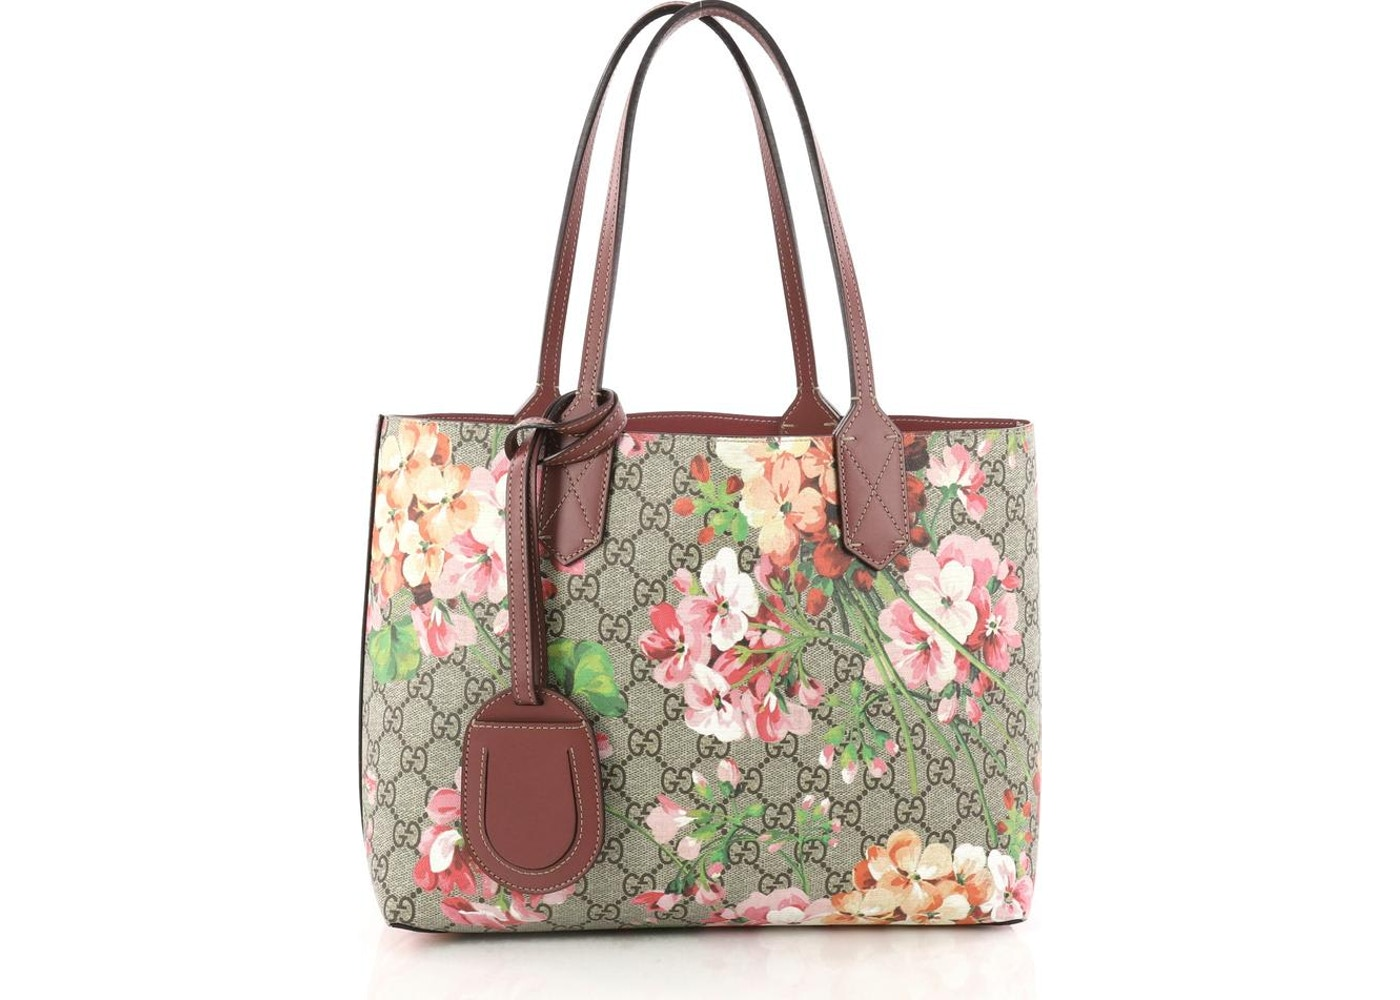 9679efadbef Buy   Sell Gucci Collectors Handbags